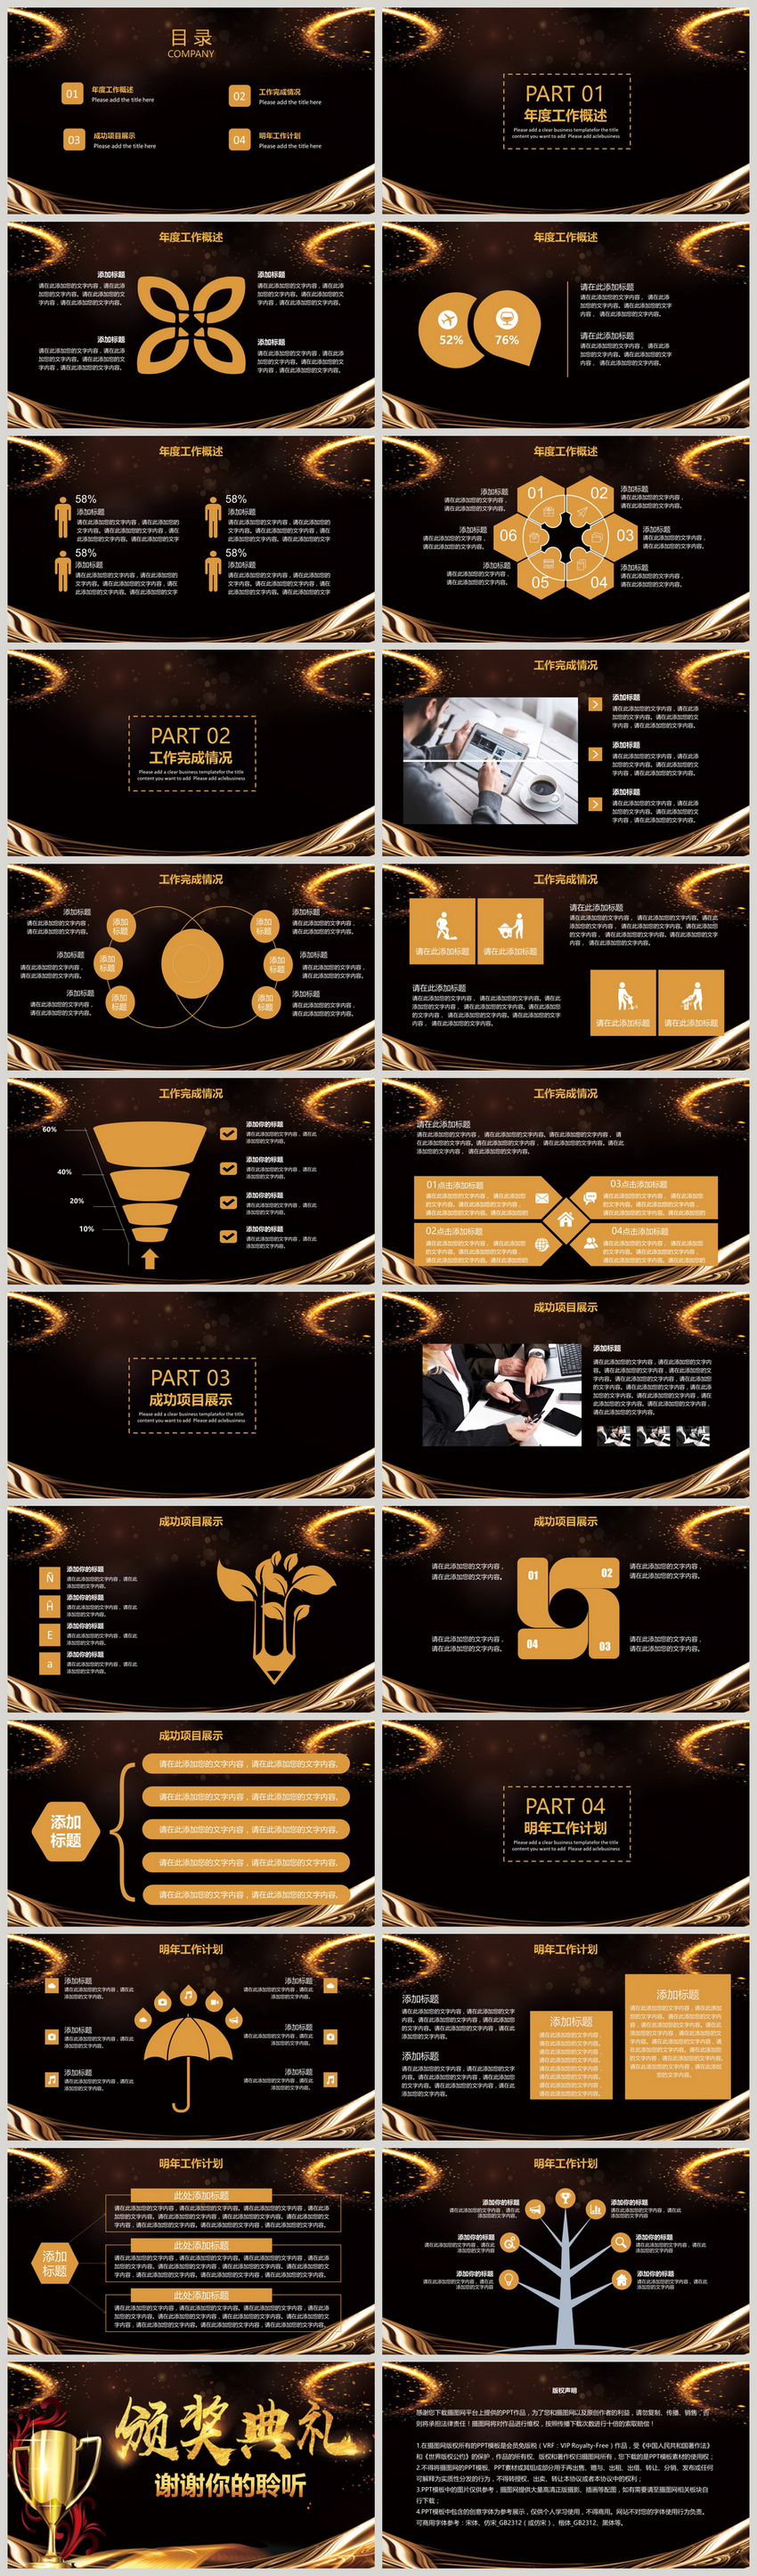 Black gold atmosphere year end award ceremony ppt template black gold atmosphere year end award ceremony ppt template toneelgroepblik Image collections